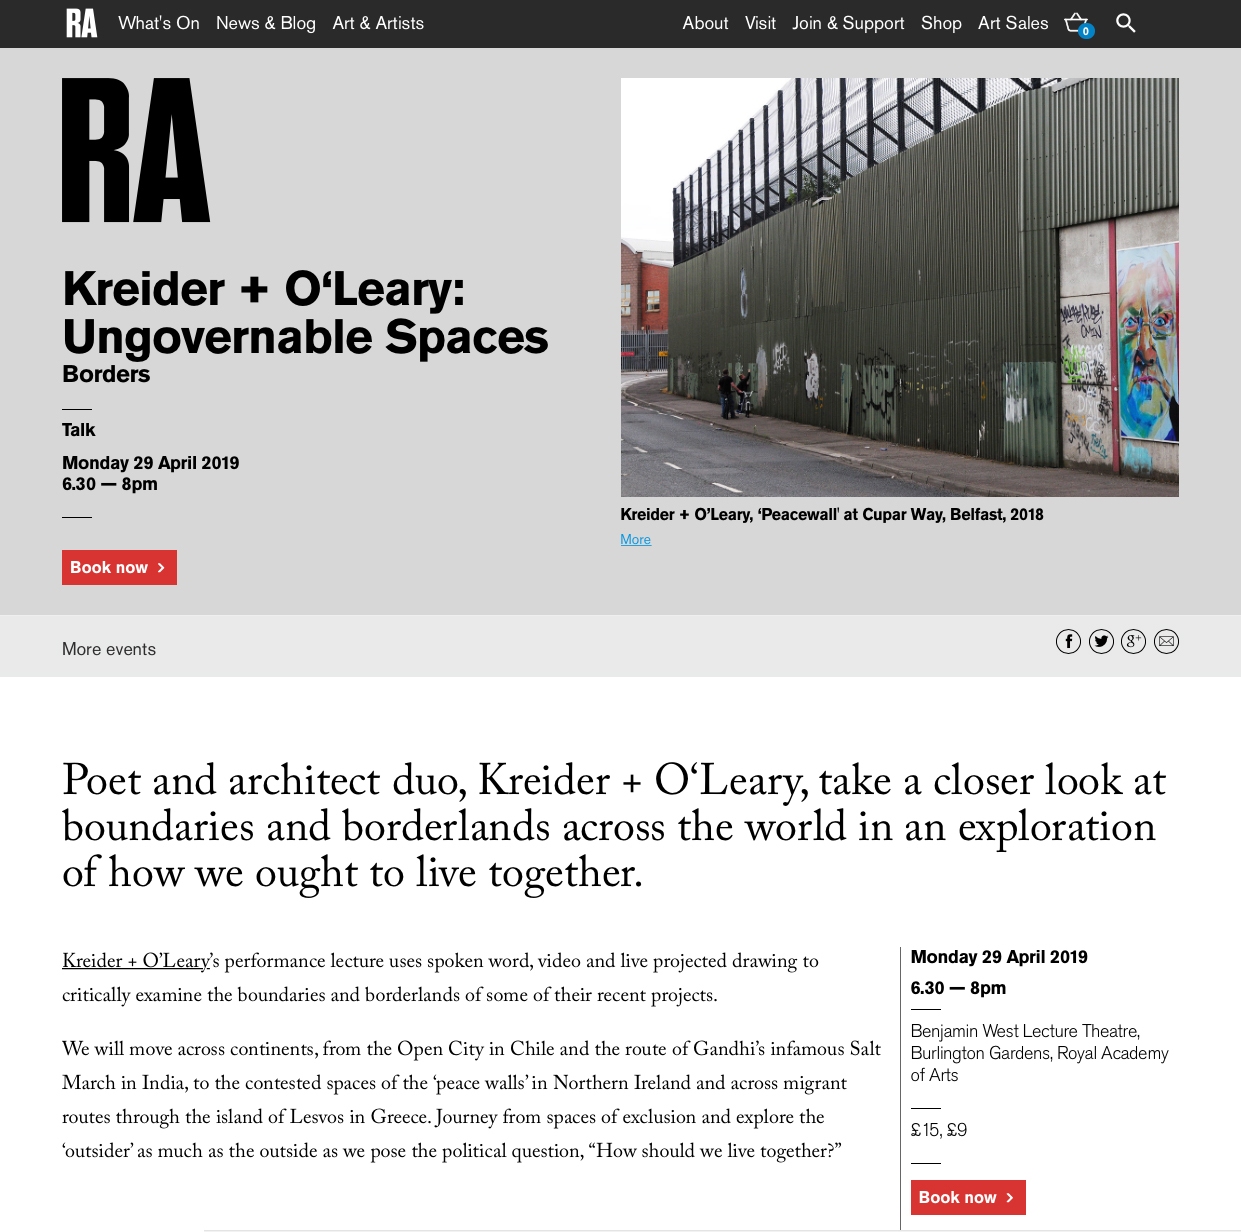 RA-Lecture-Kreider-OLeary-Ungovernable-Spaces.jpg